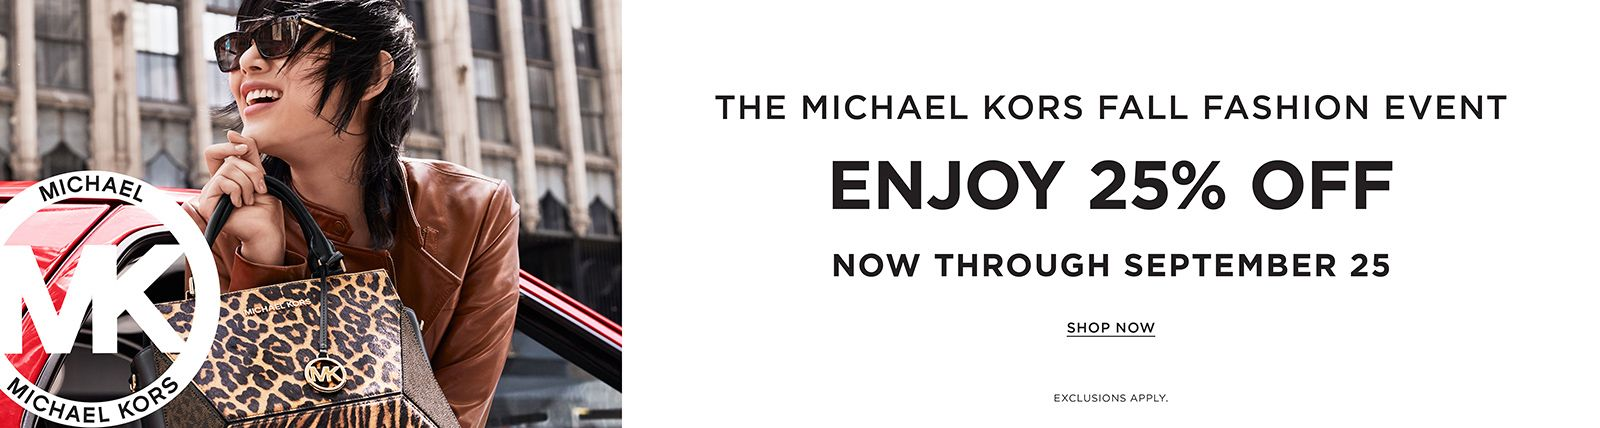 The Michael Kors Fashion Event Enjoy 25 percent, Off, Now, Through September 25 Shop Now Exclusion Apply